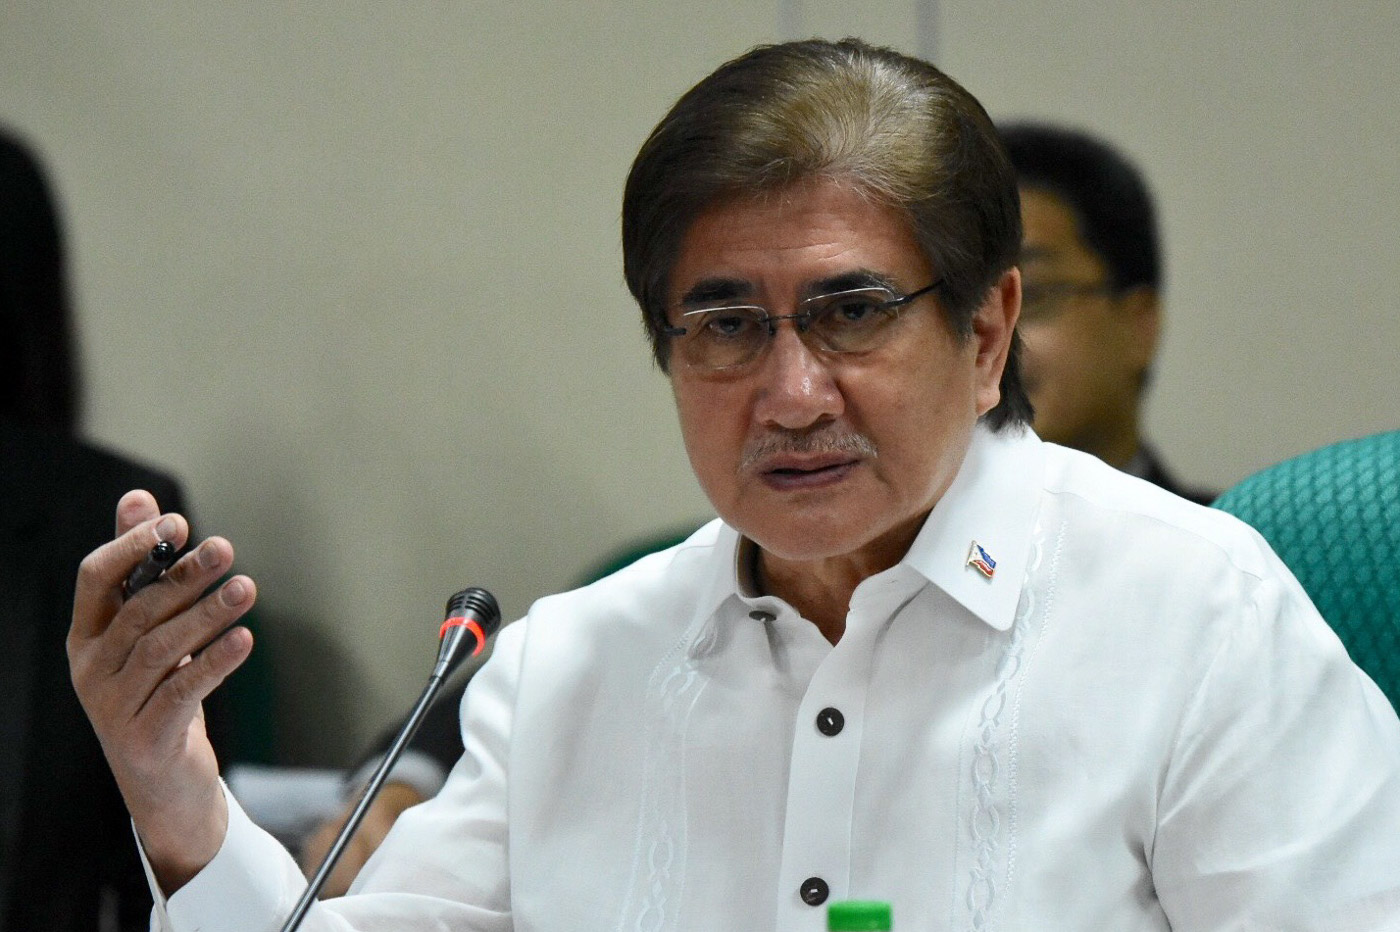 COUPS BEHIND HIM. Senator Gregorio Honasan II was granted amnesty in 1992 after leading several failed coups against the Cory Aquino government. File photo by Angie de Silva/Rappler